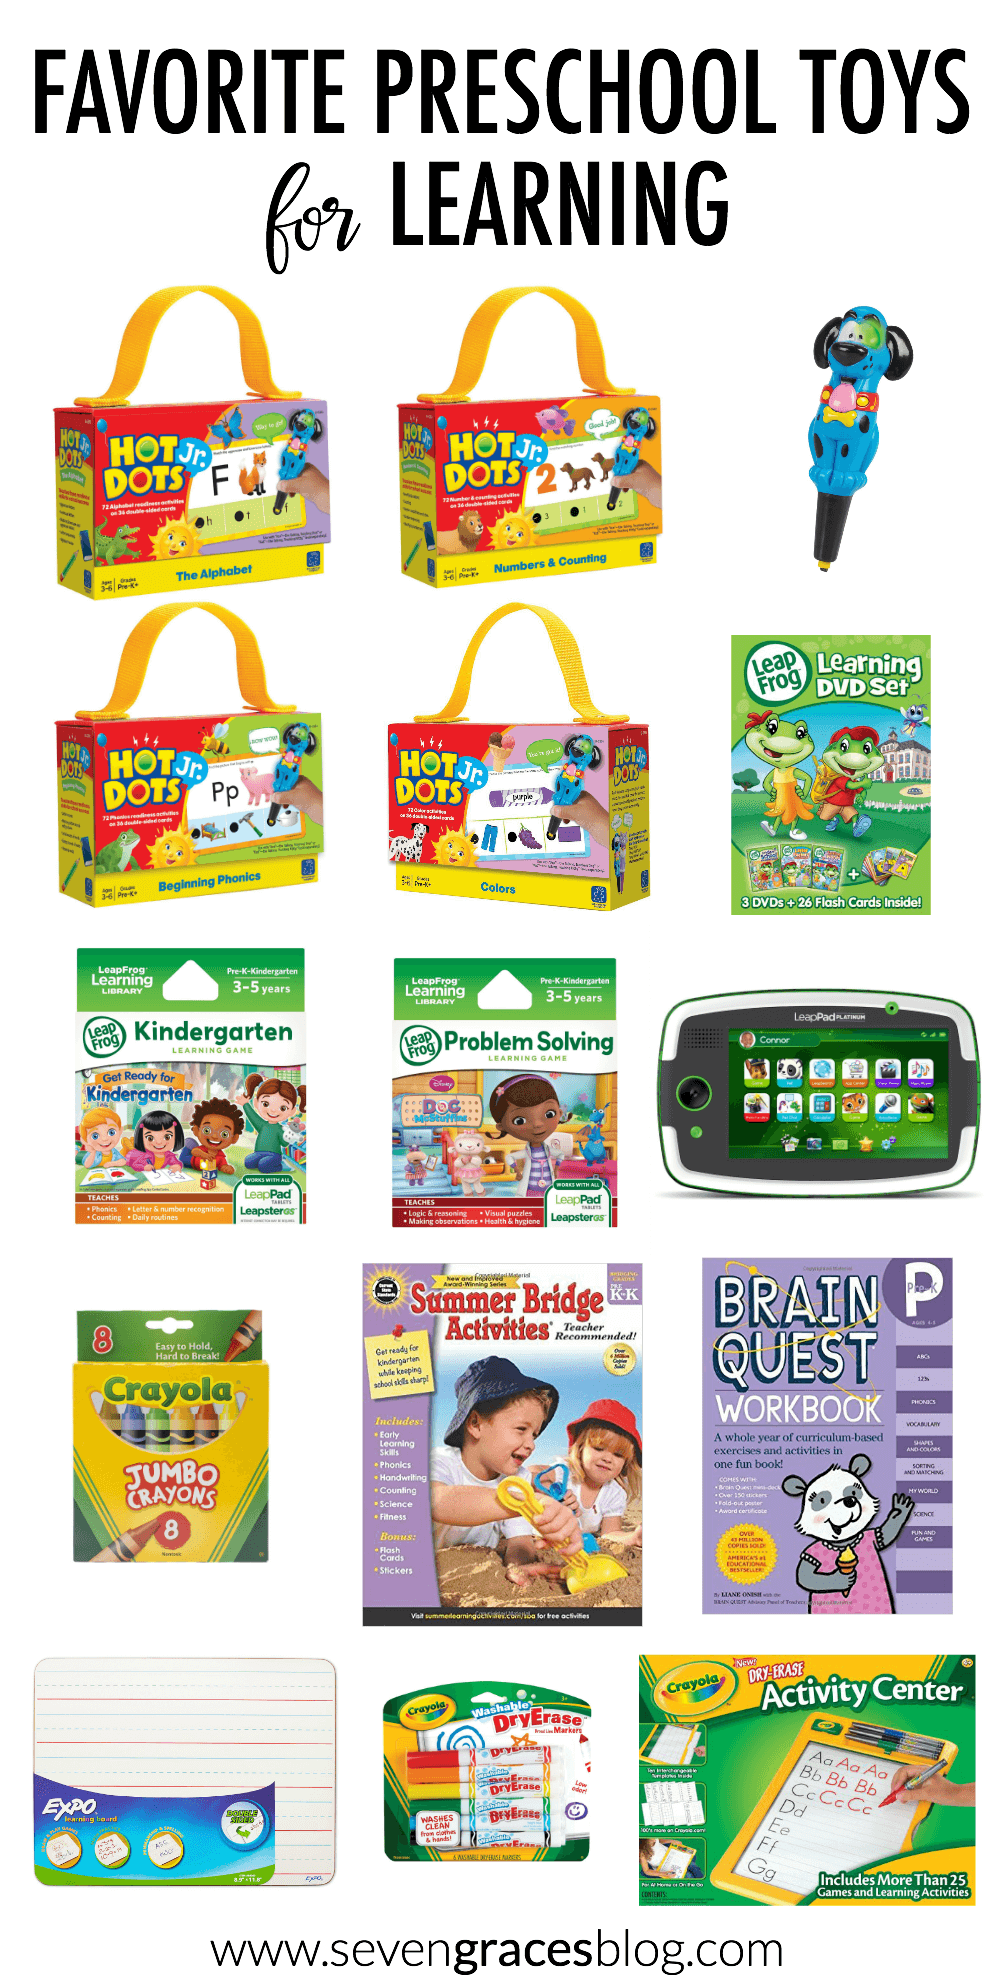 The best roundup of preschool toys for learning! These activities are great enrichment tools for preschoolers. Great for summertime activities or throughout the school year.